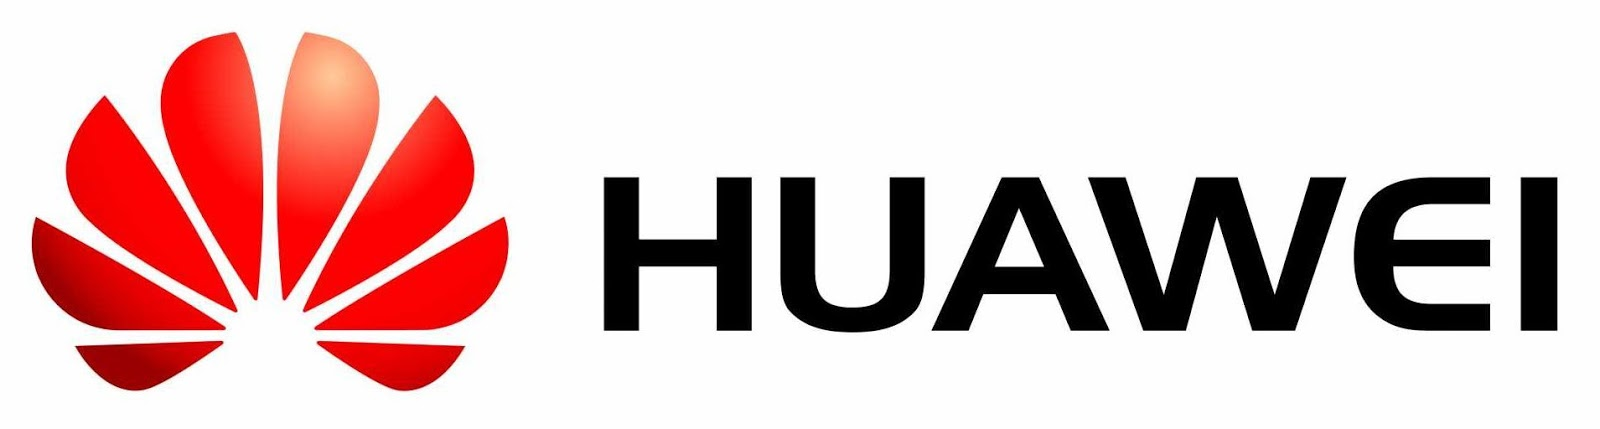 Huawei Consumer Business Group Announces Business Results for first half of 2018